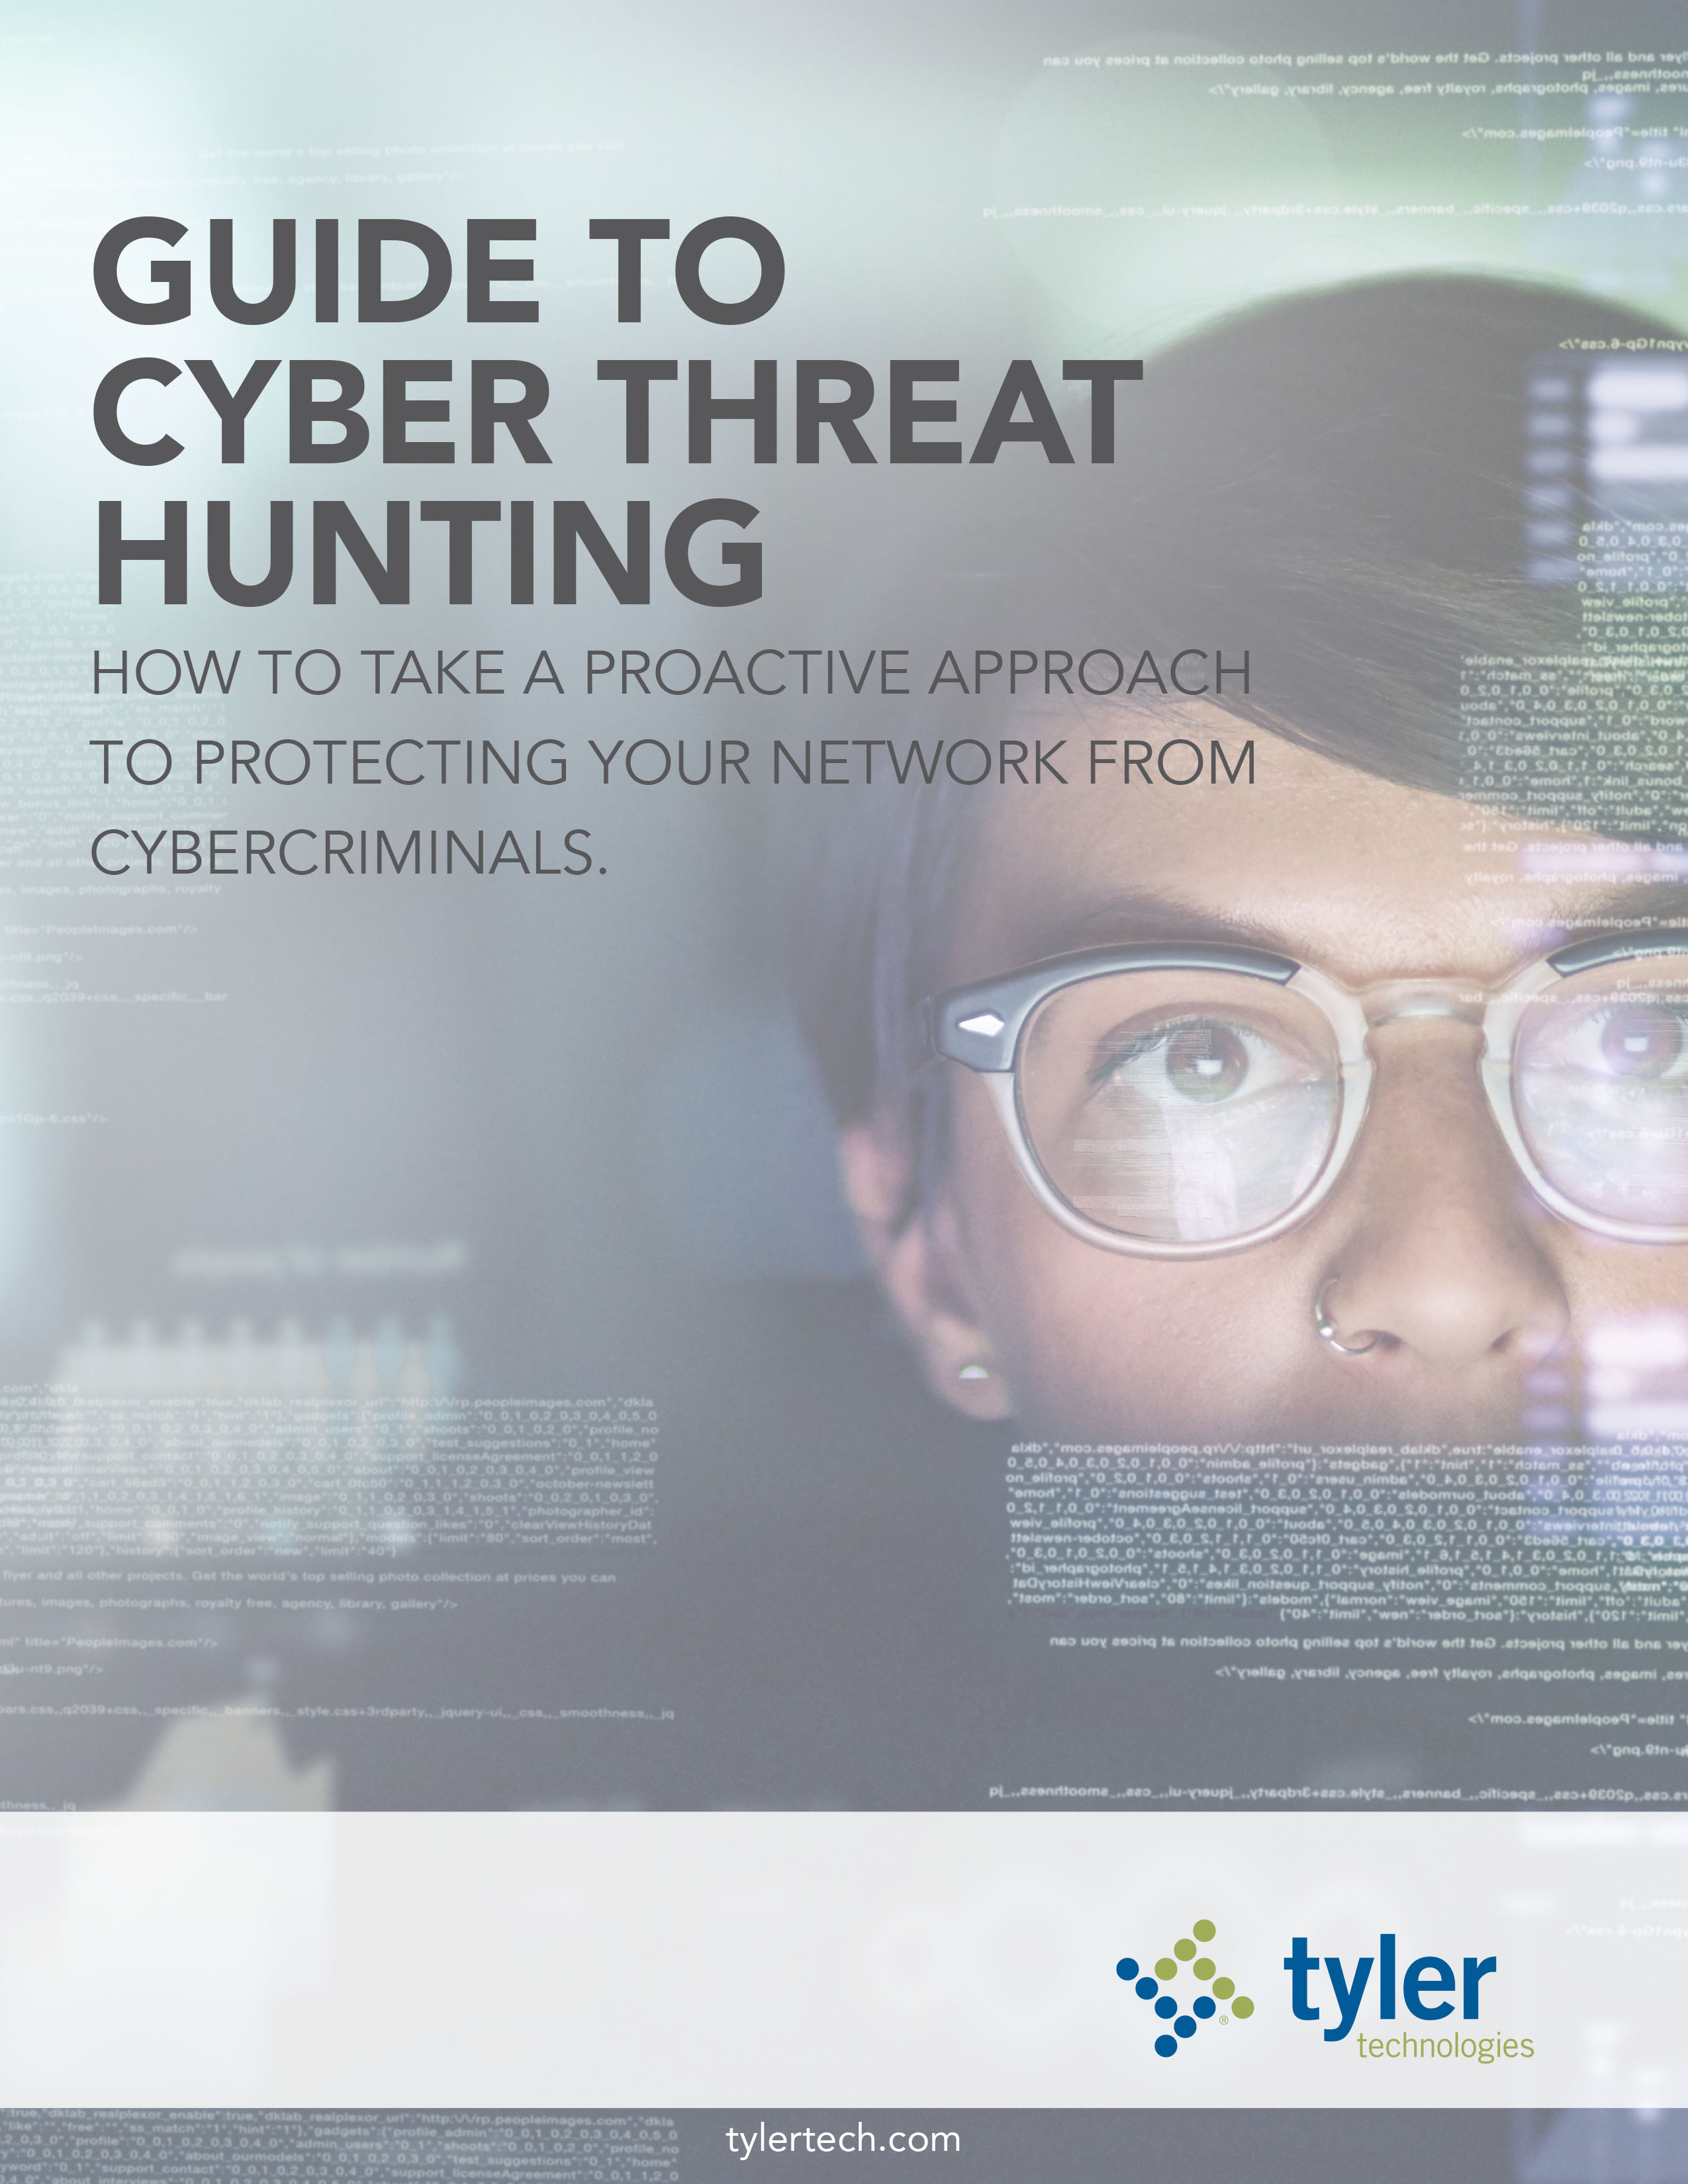 Guide to Cyber Threat Hunting